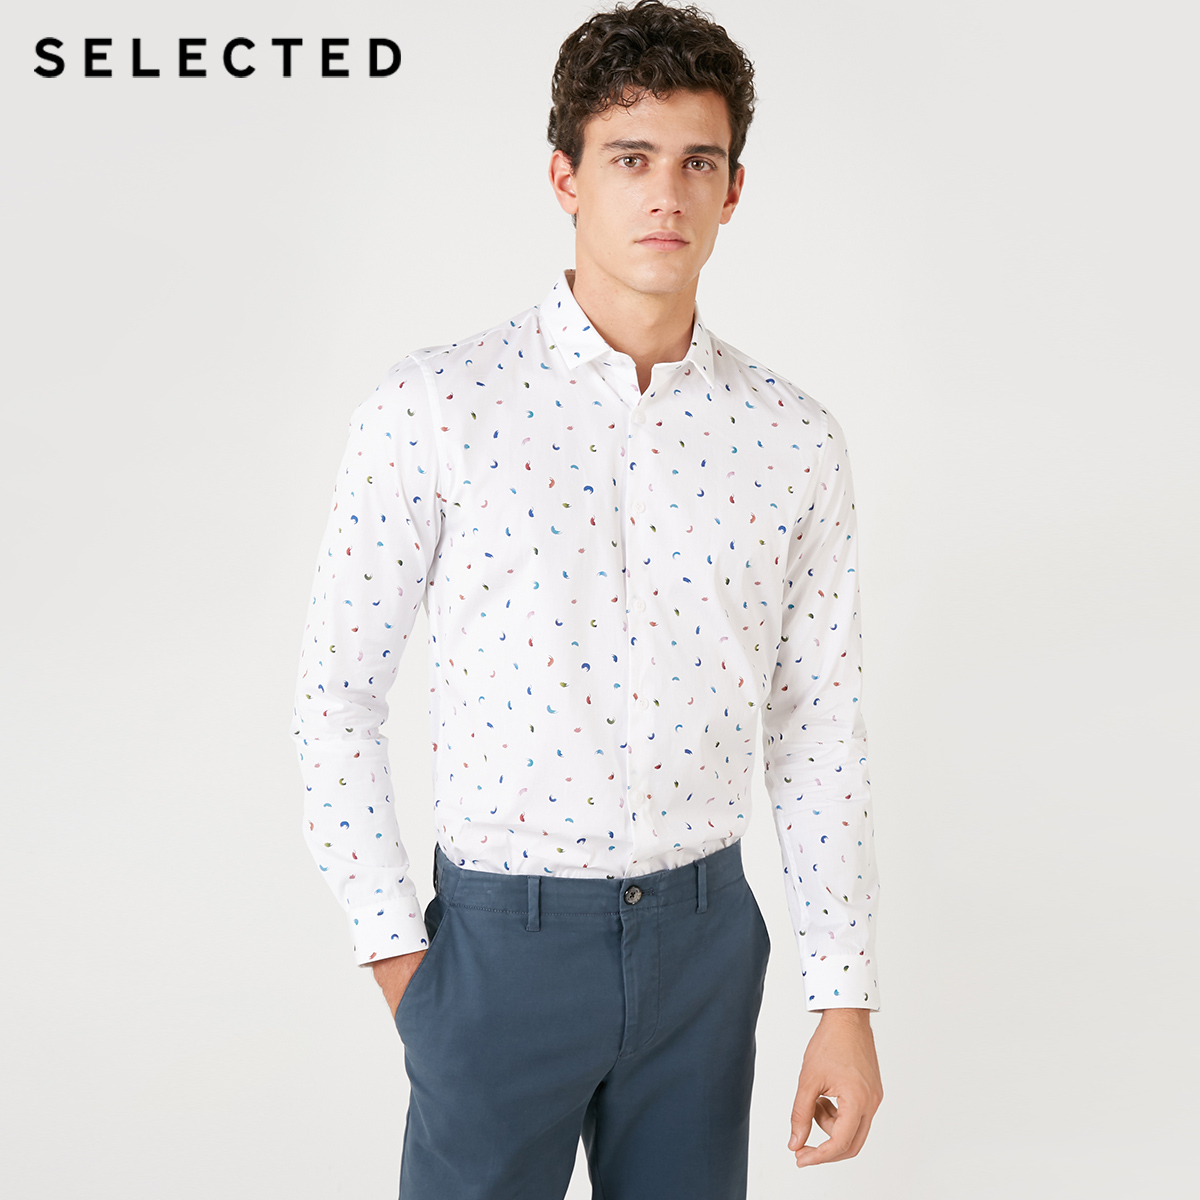 SELECTED Men's Slim Fit 100% Cotton Shirt S|418405522